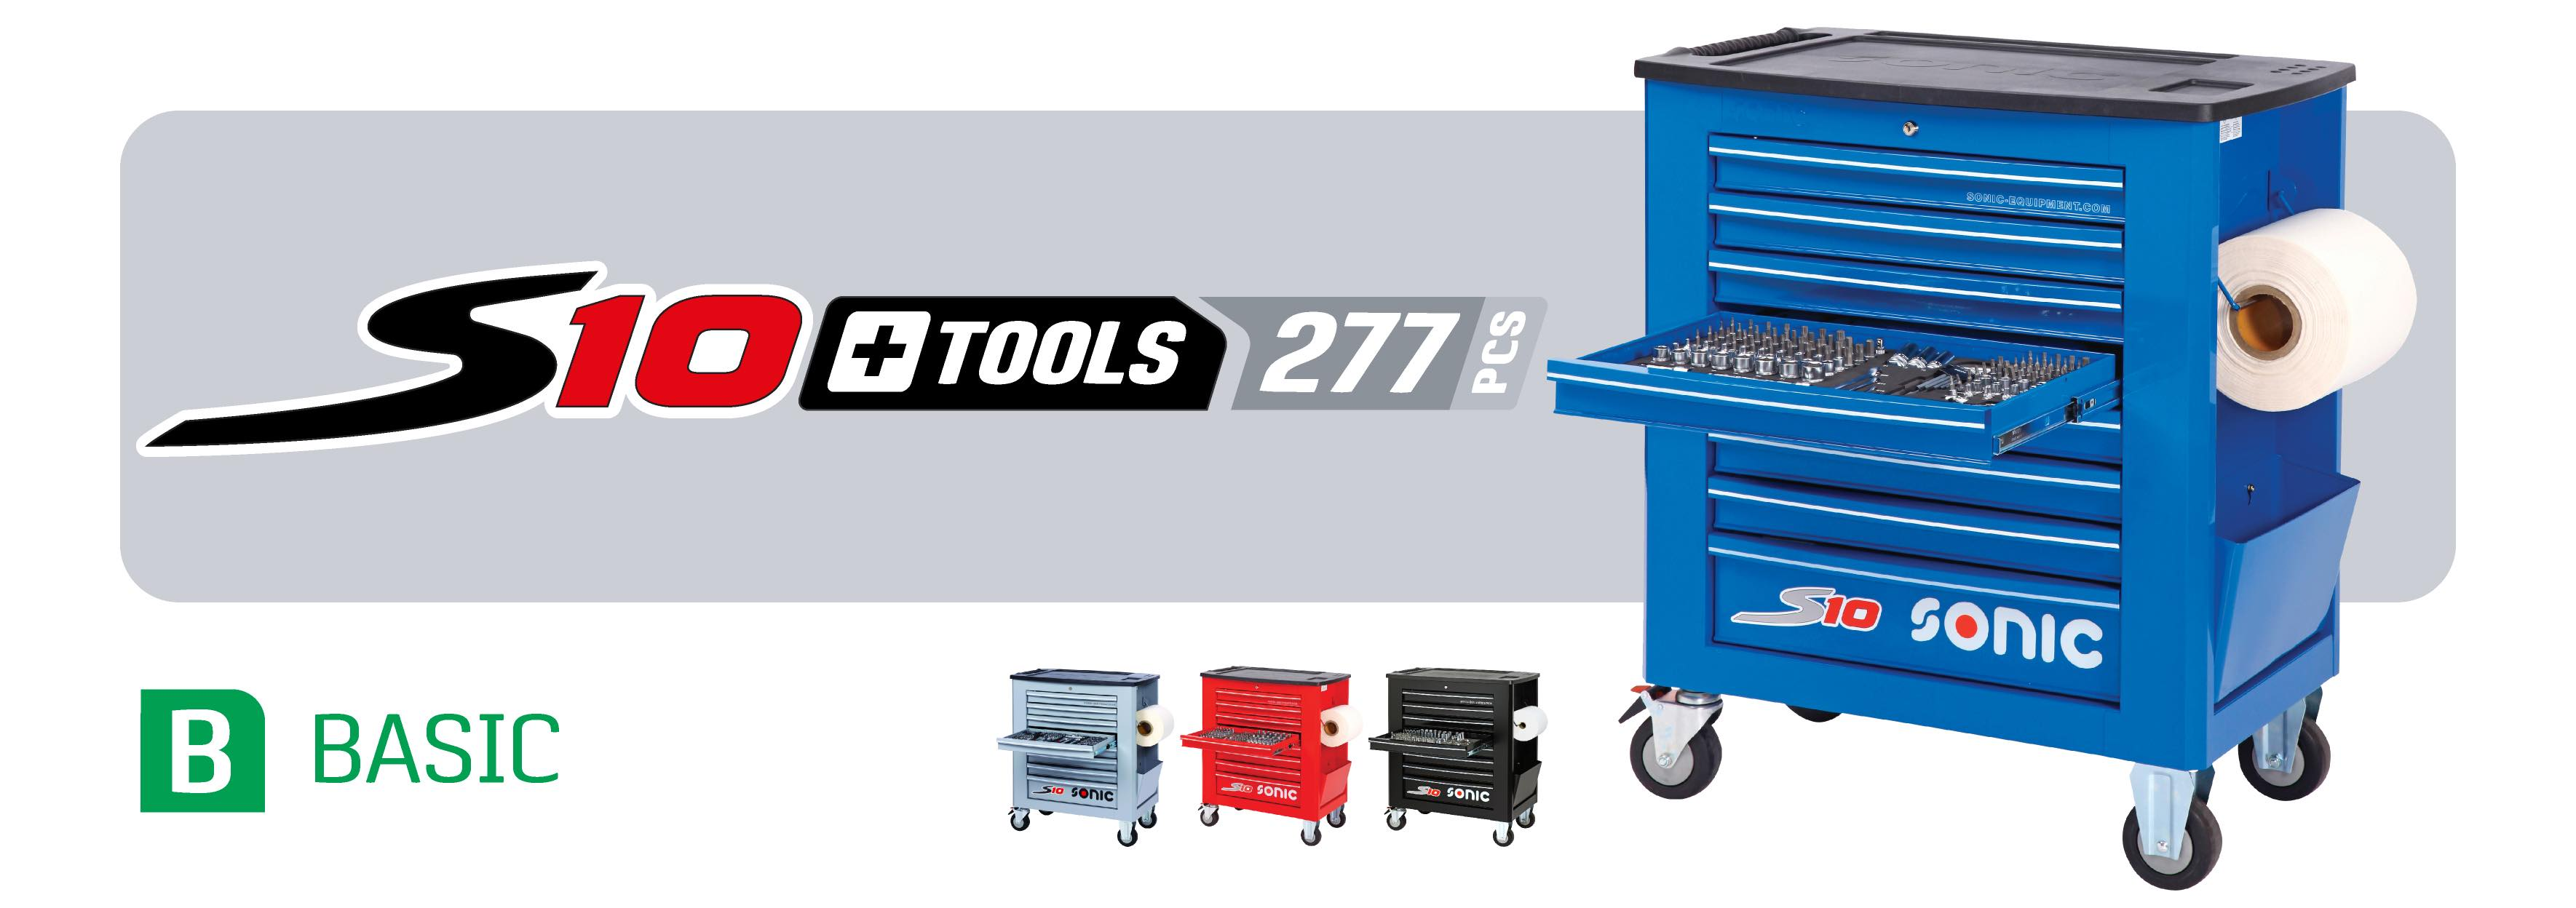 s10 277 toolbox